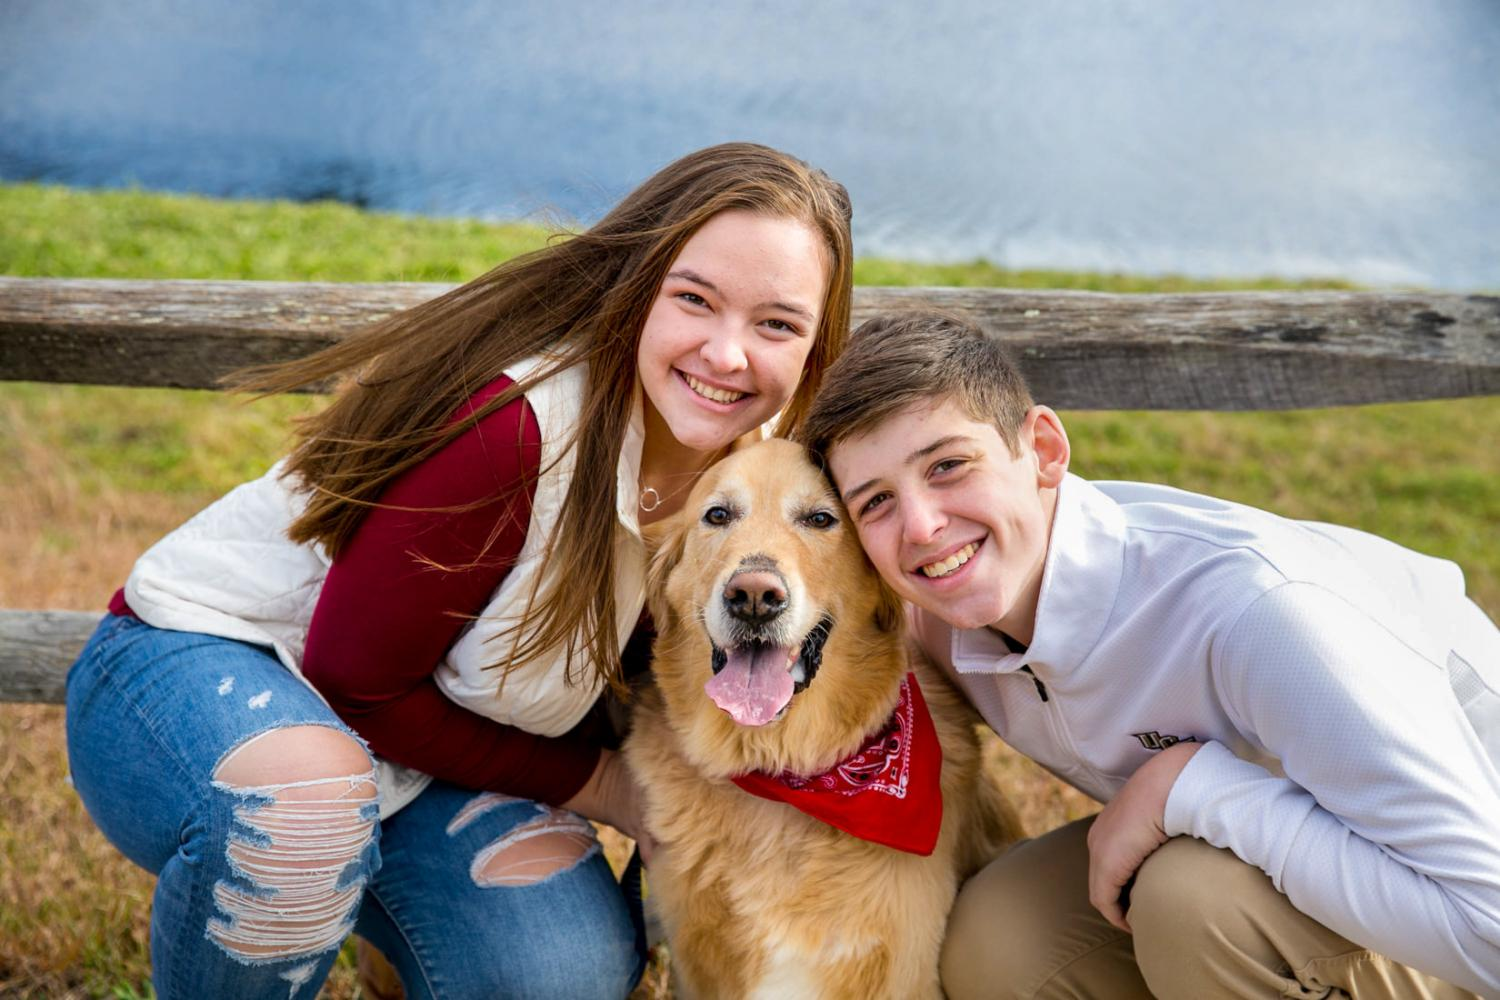 Pardo_Photo_Dog_Family_Portrait_Cranberry_Bogs_Patriots_Place_Foxboro